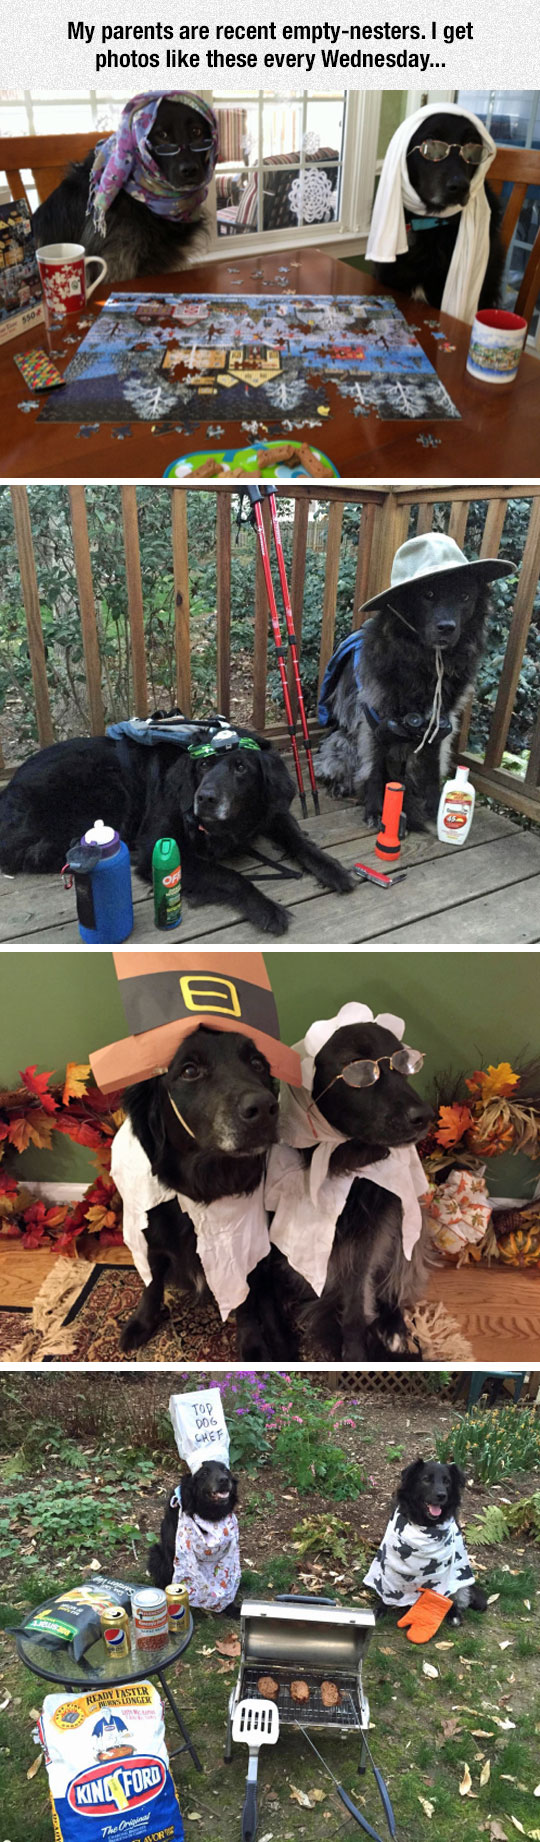 funny-dogs-dressed-up-playing-games